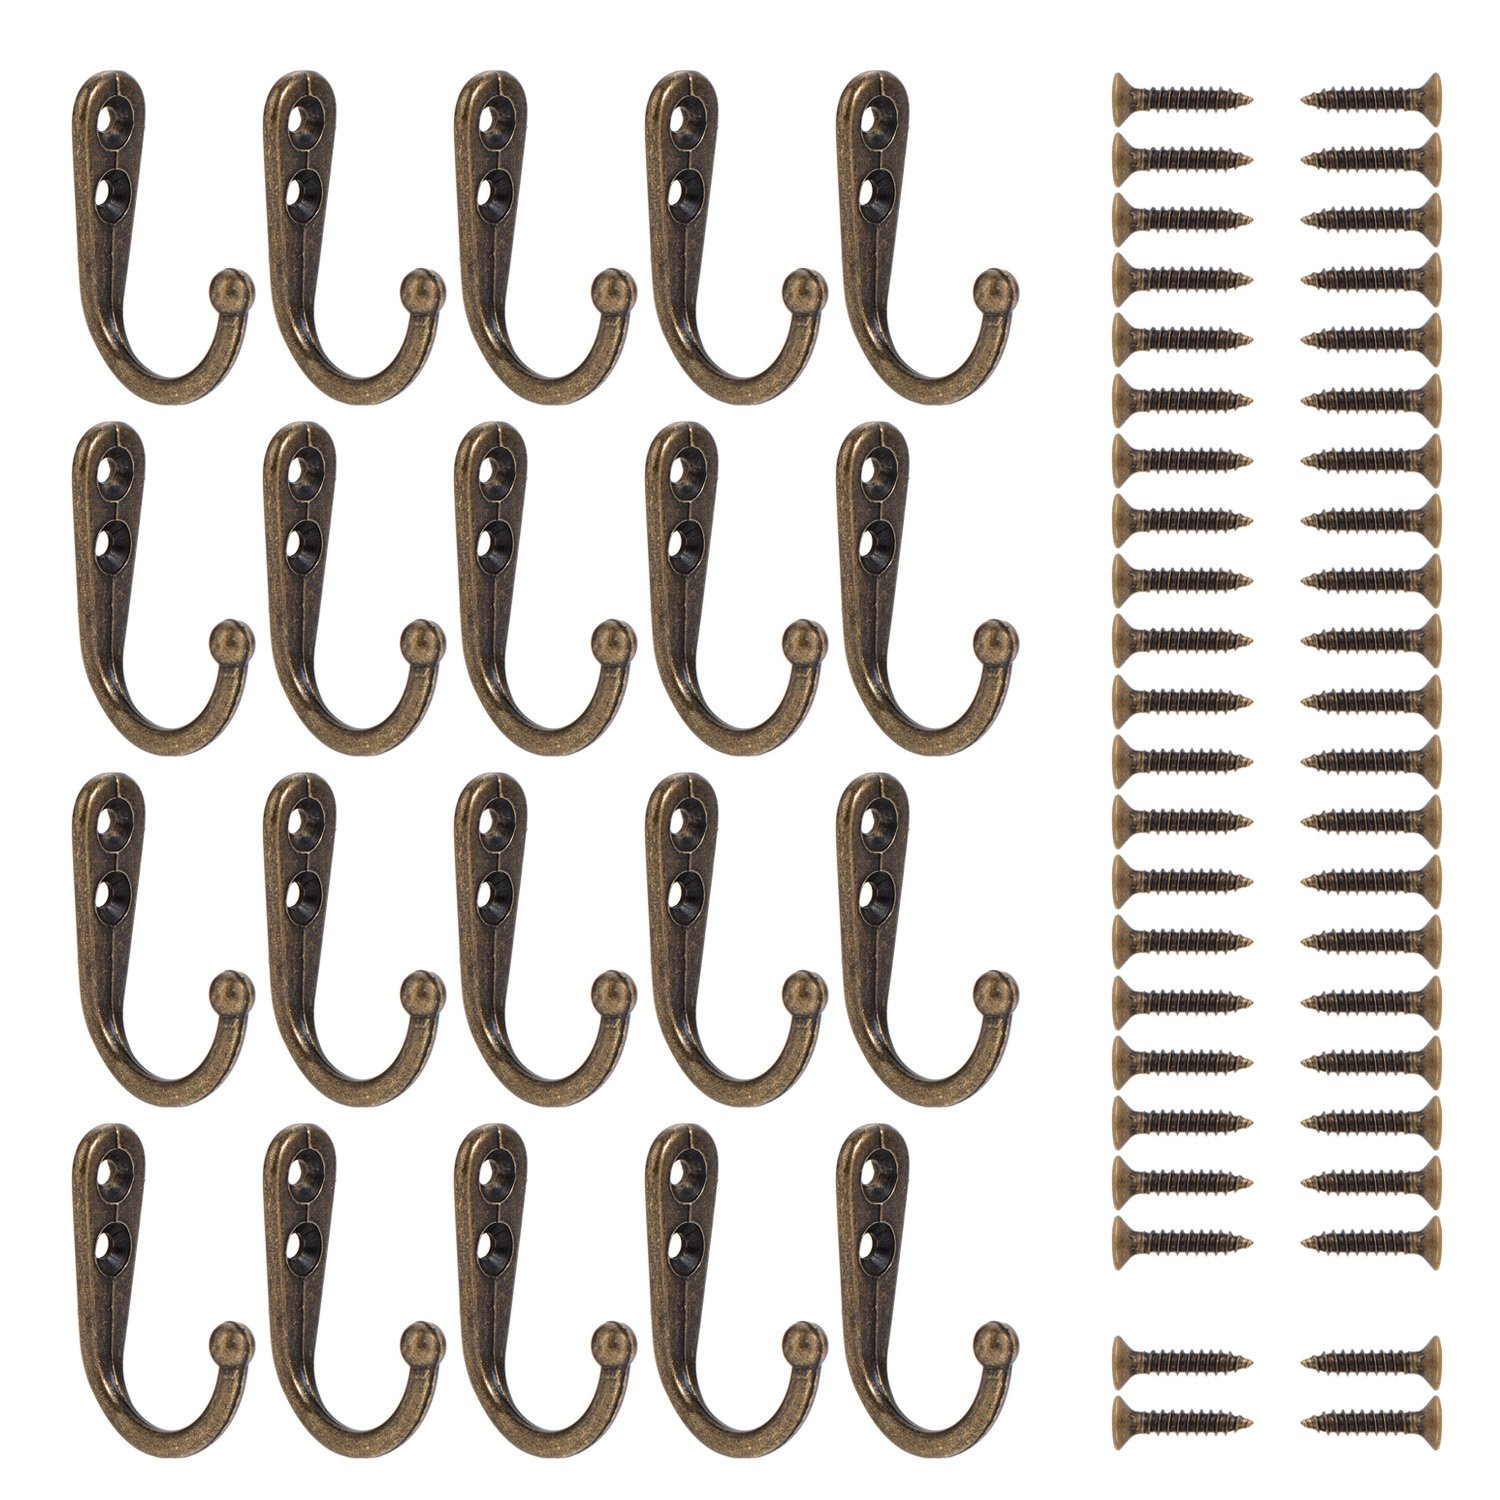 Wall Mounted Hook 20 Pieces Robe Hooks Retro Single Coat Hanger and 44 Pieces Screws (Reddish Brown) Vonker